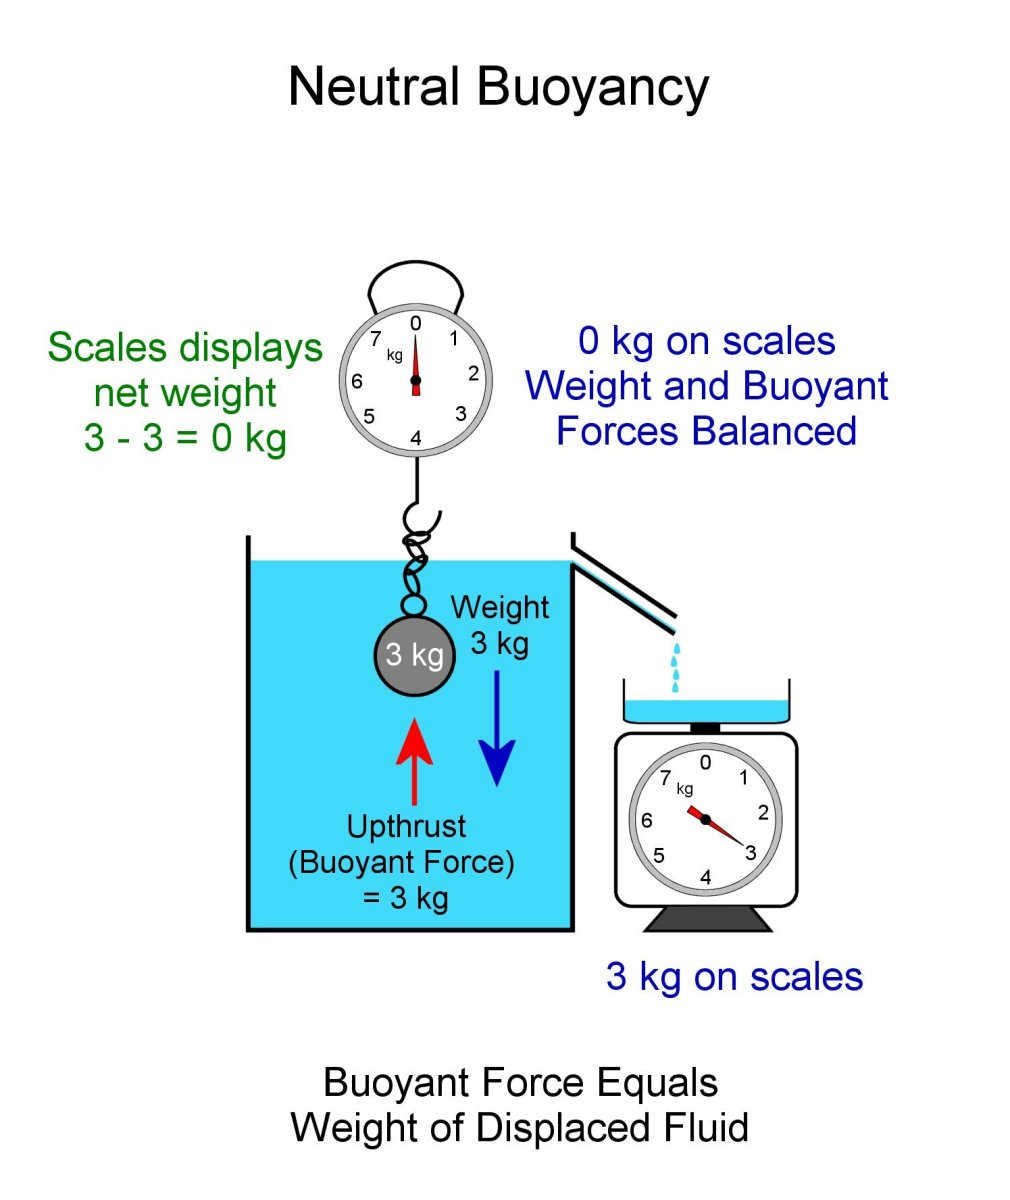 Neutral Buoyancy. Body can be positioned anywhere under the surface. Buoyancy force and weight of ball are equal.